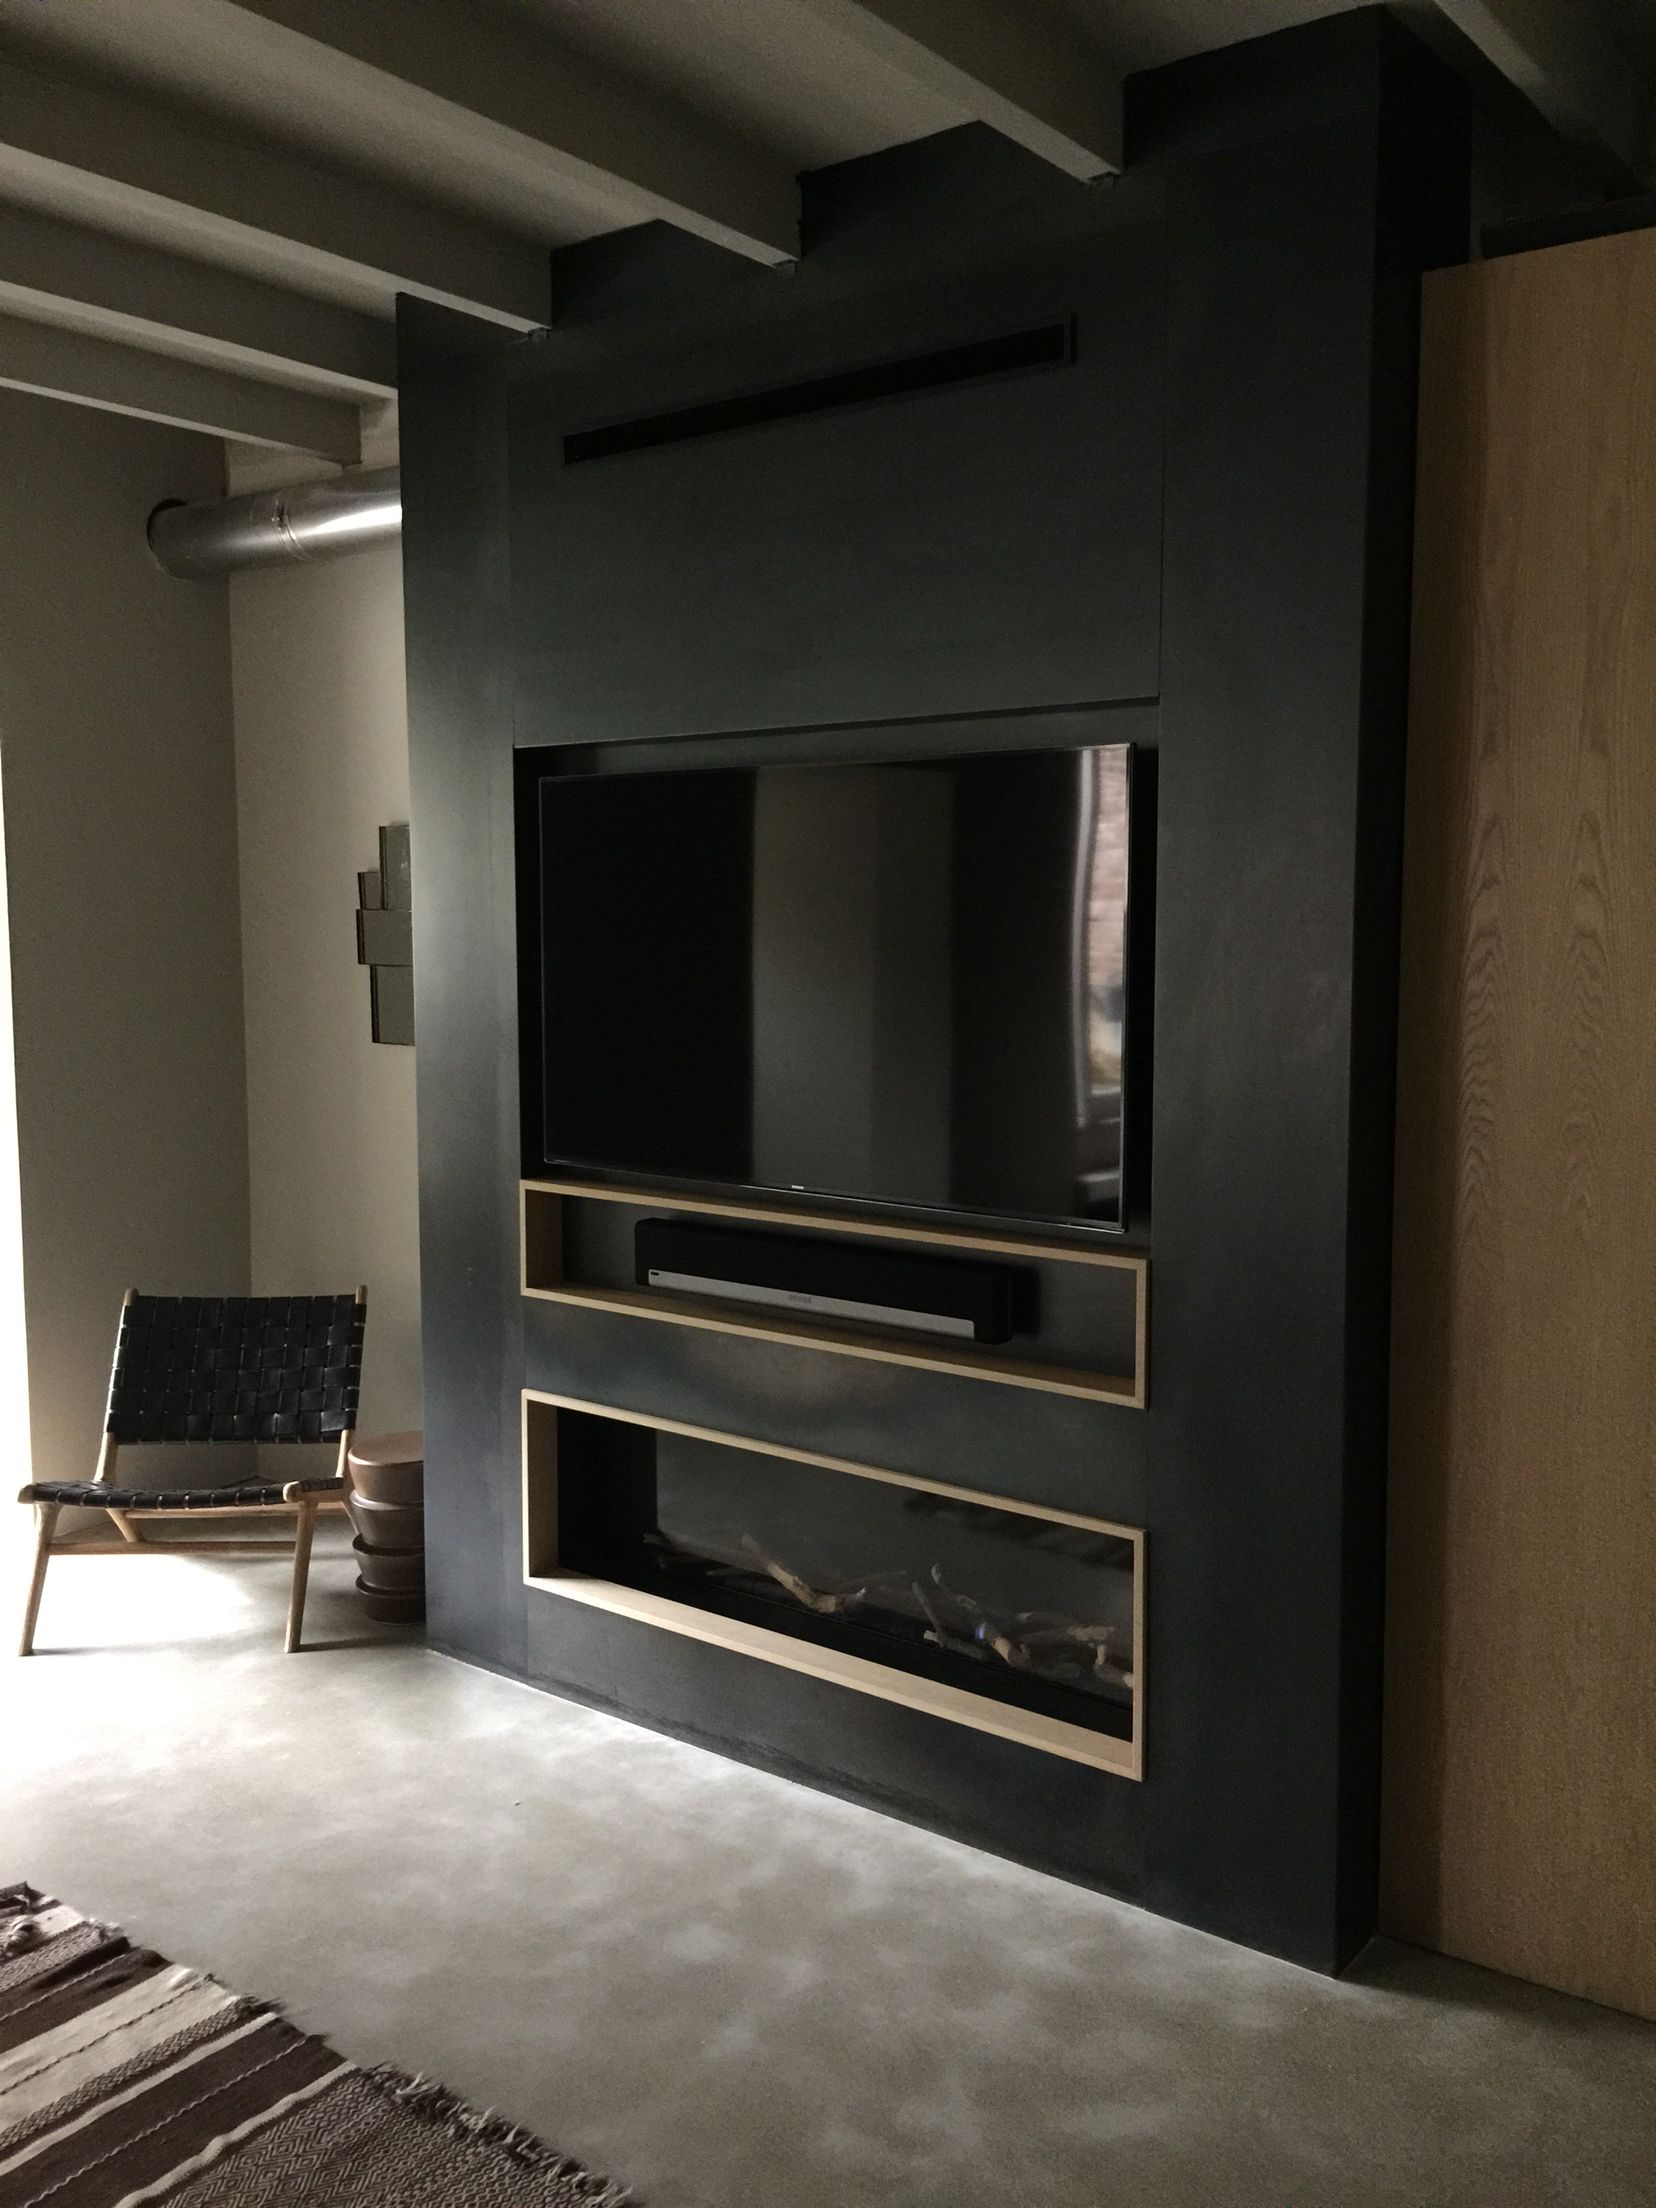 Bespoke M Design Gas Fireplace With Blue Steel Panels